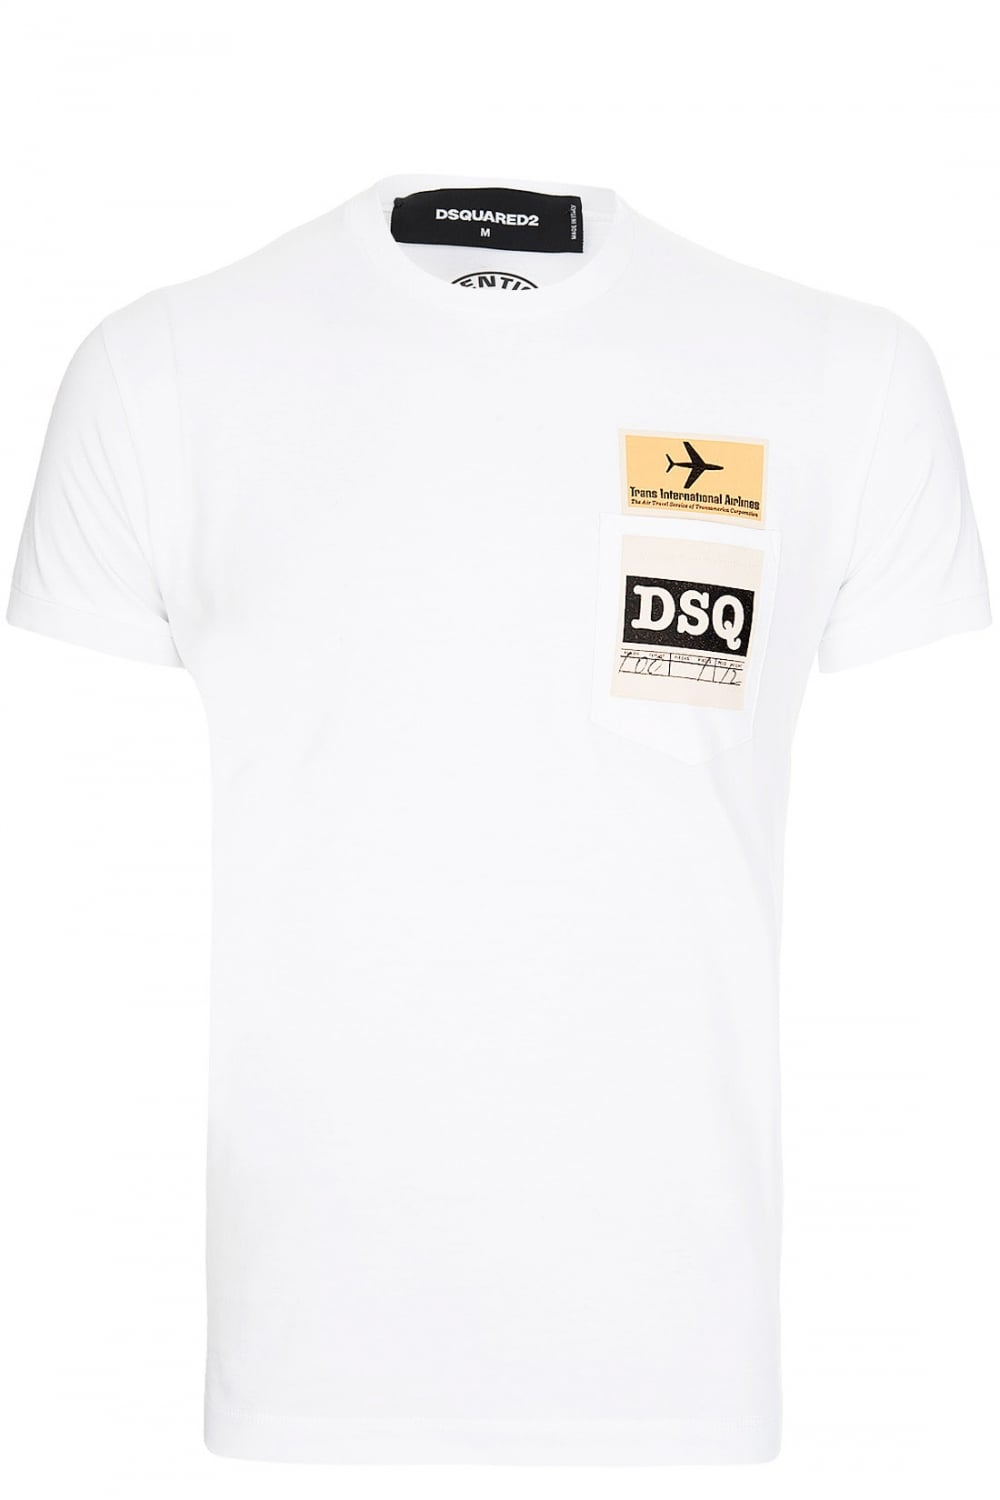 dsquared dsquared plane ticket logo t shirt white dsquared from circle fashion uk. Black Bedroom Furniture Sets. Home Design Ideas